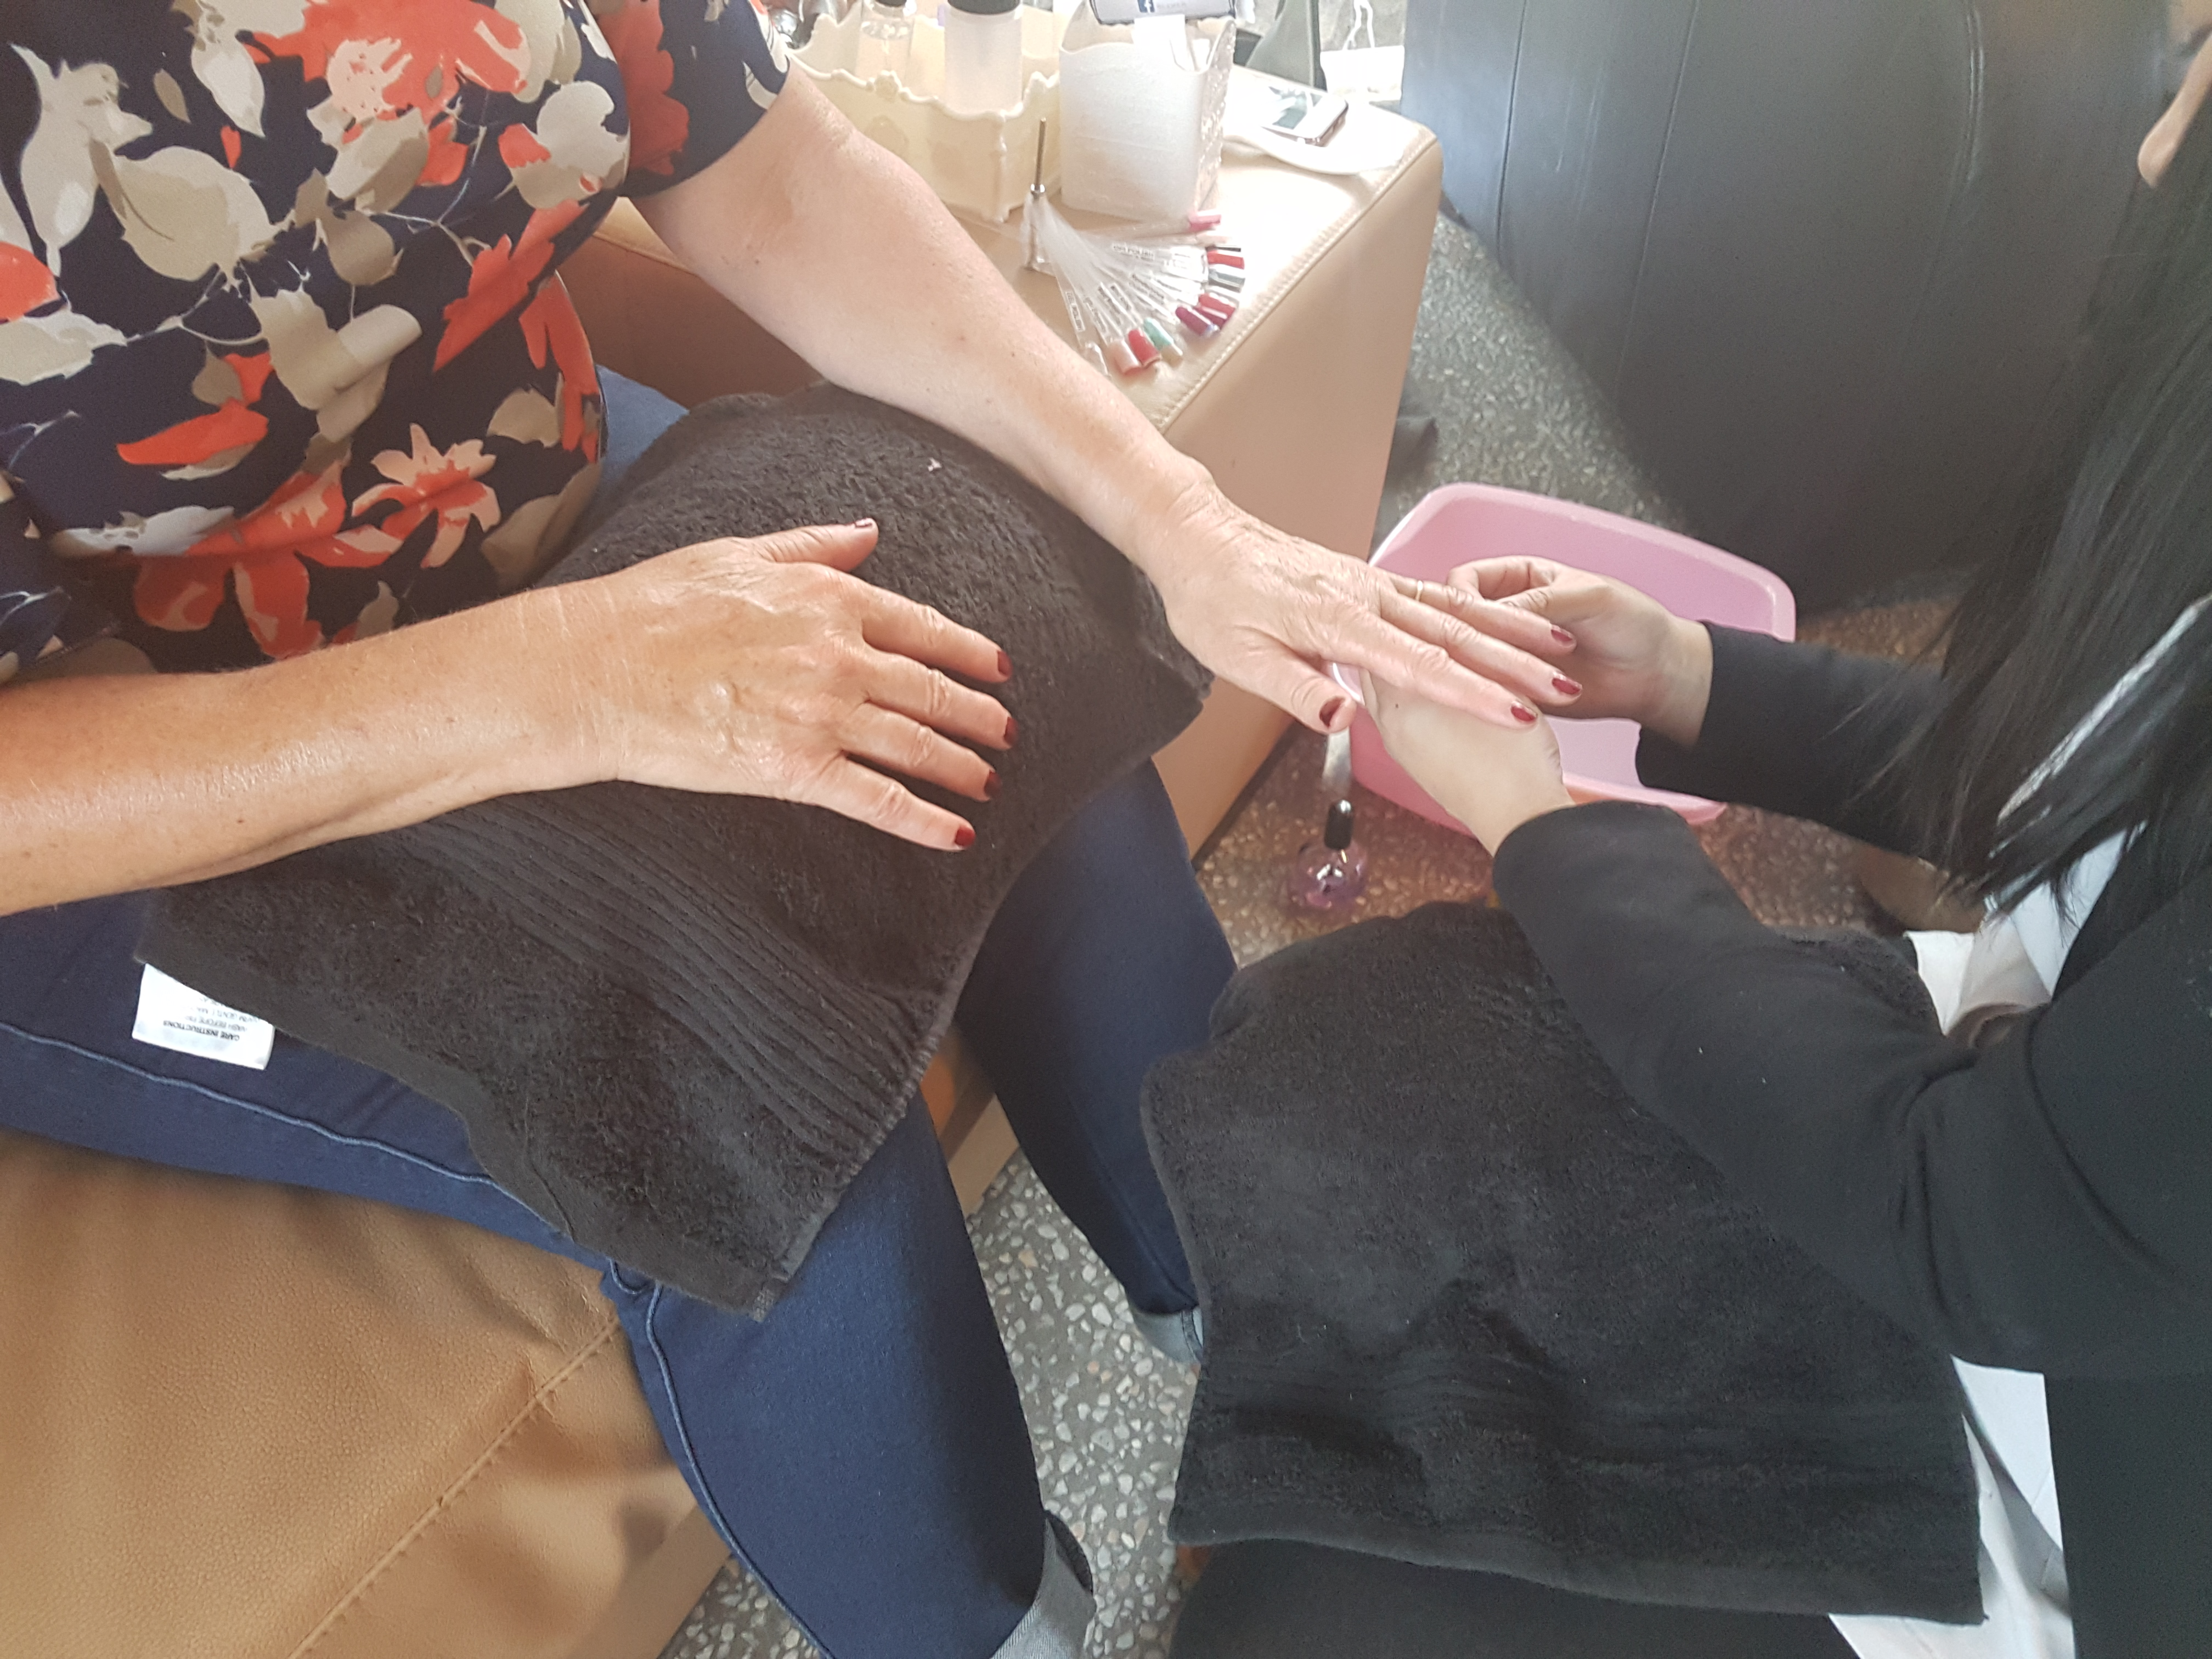 Guests getting manicured